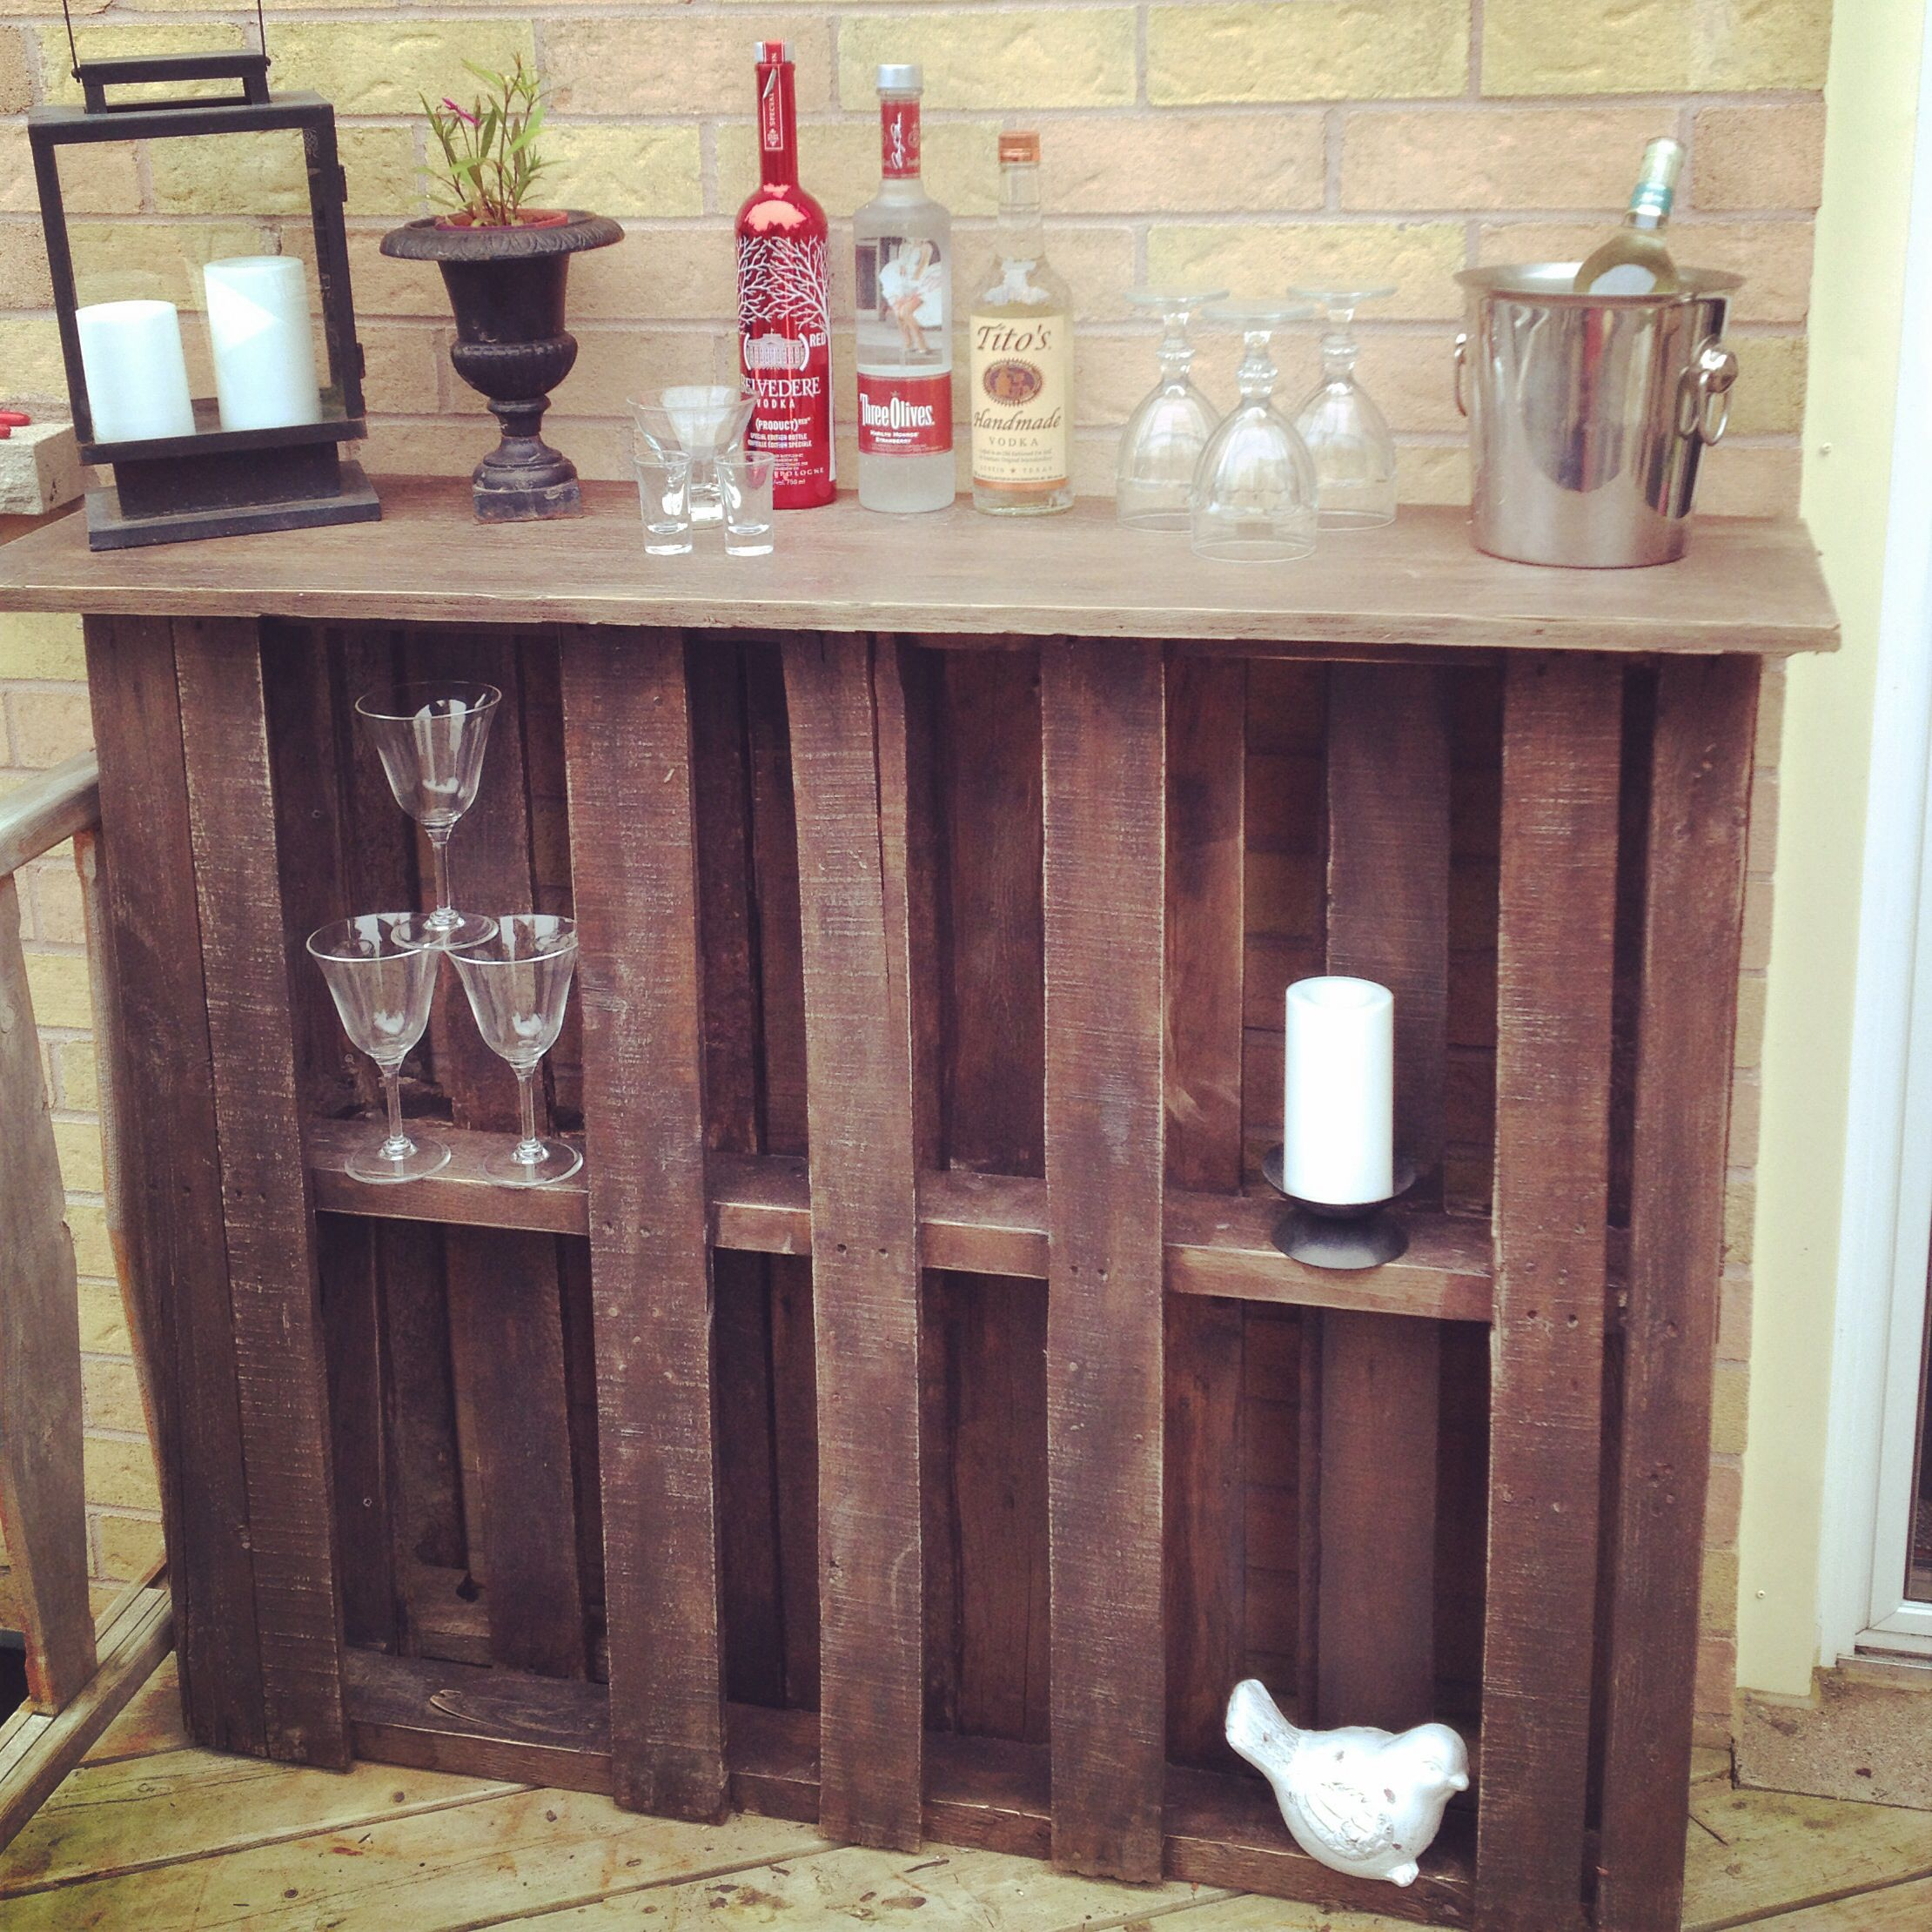 Bar made from Pallets 2 pallet and some plywood attached and